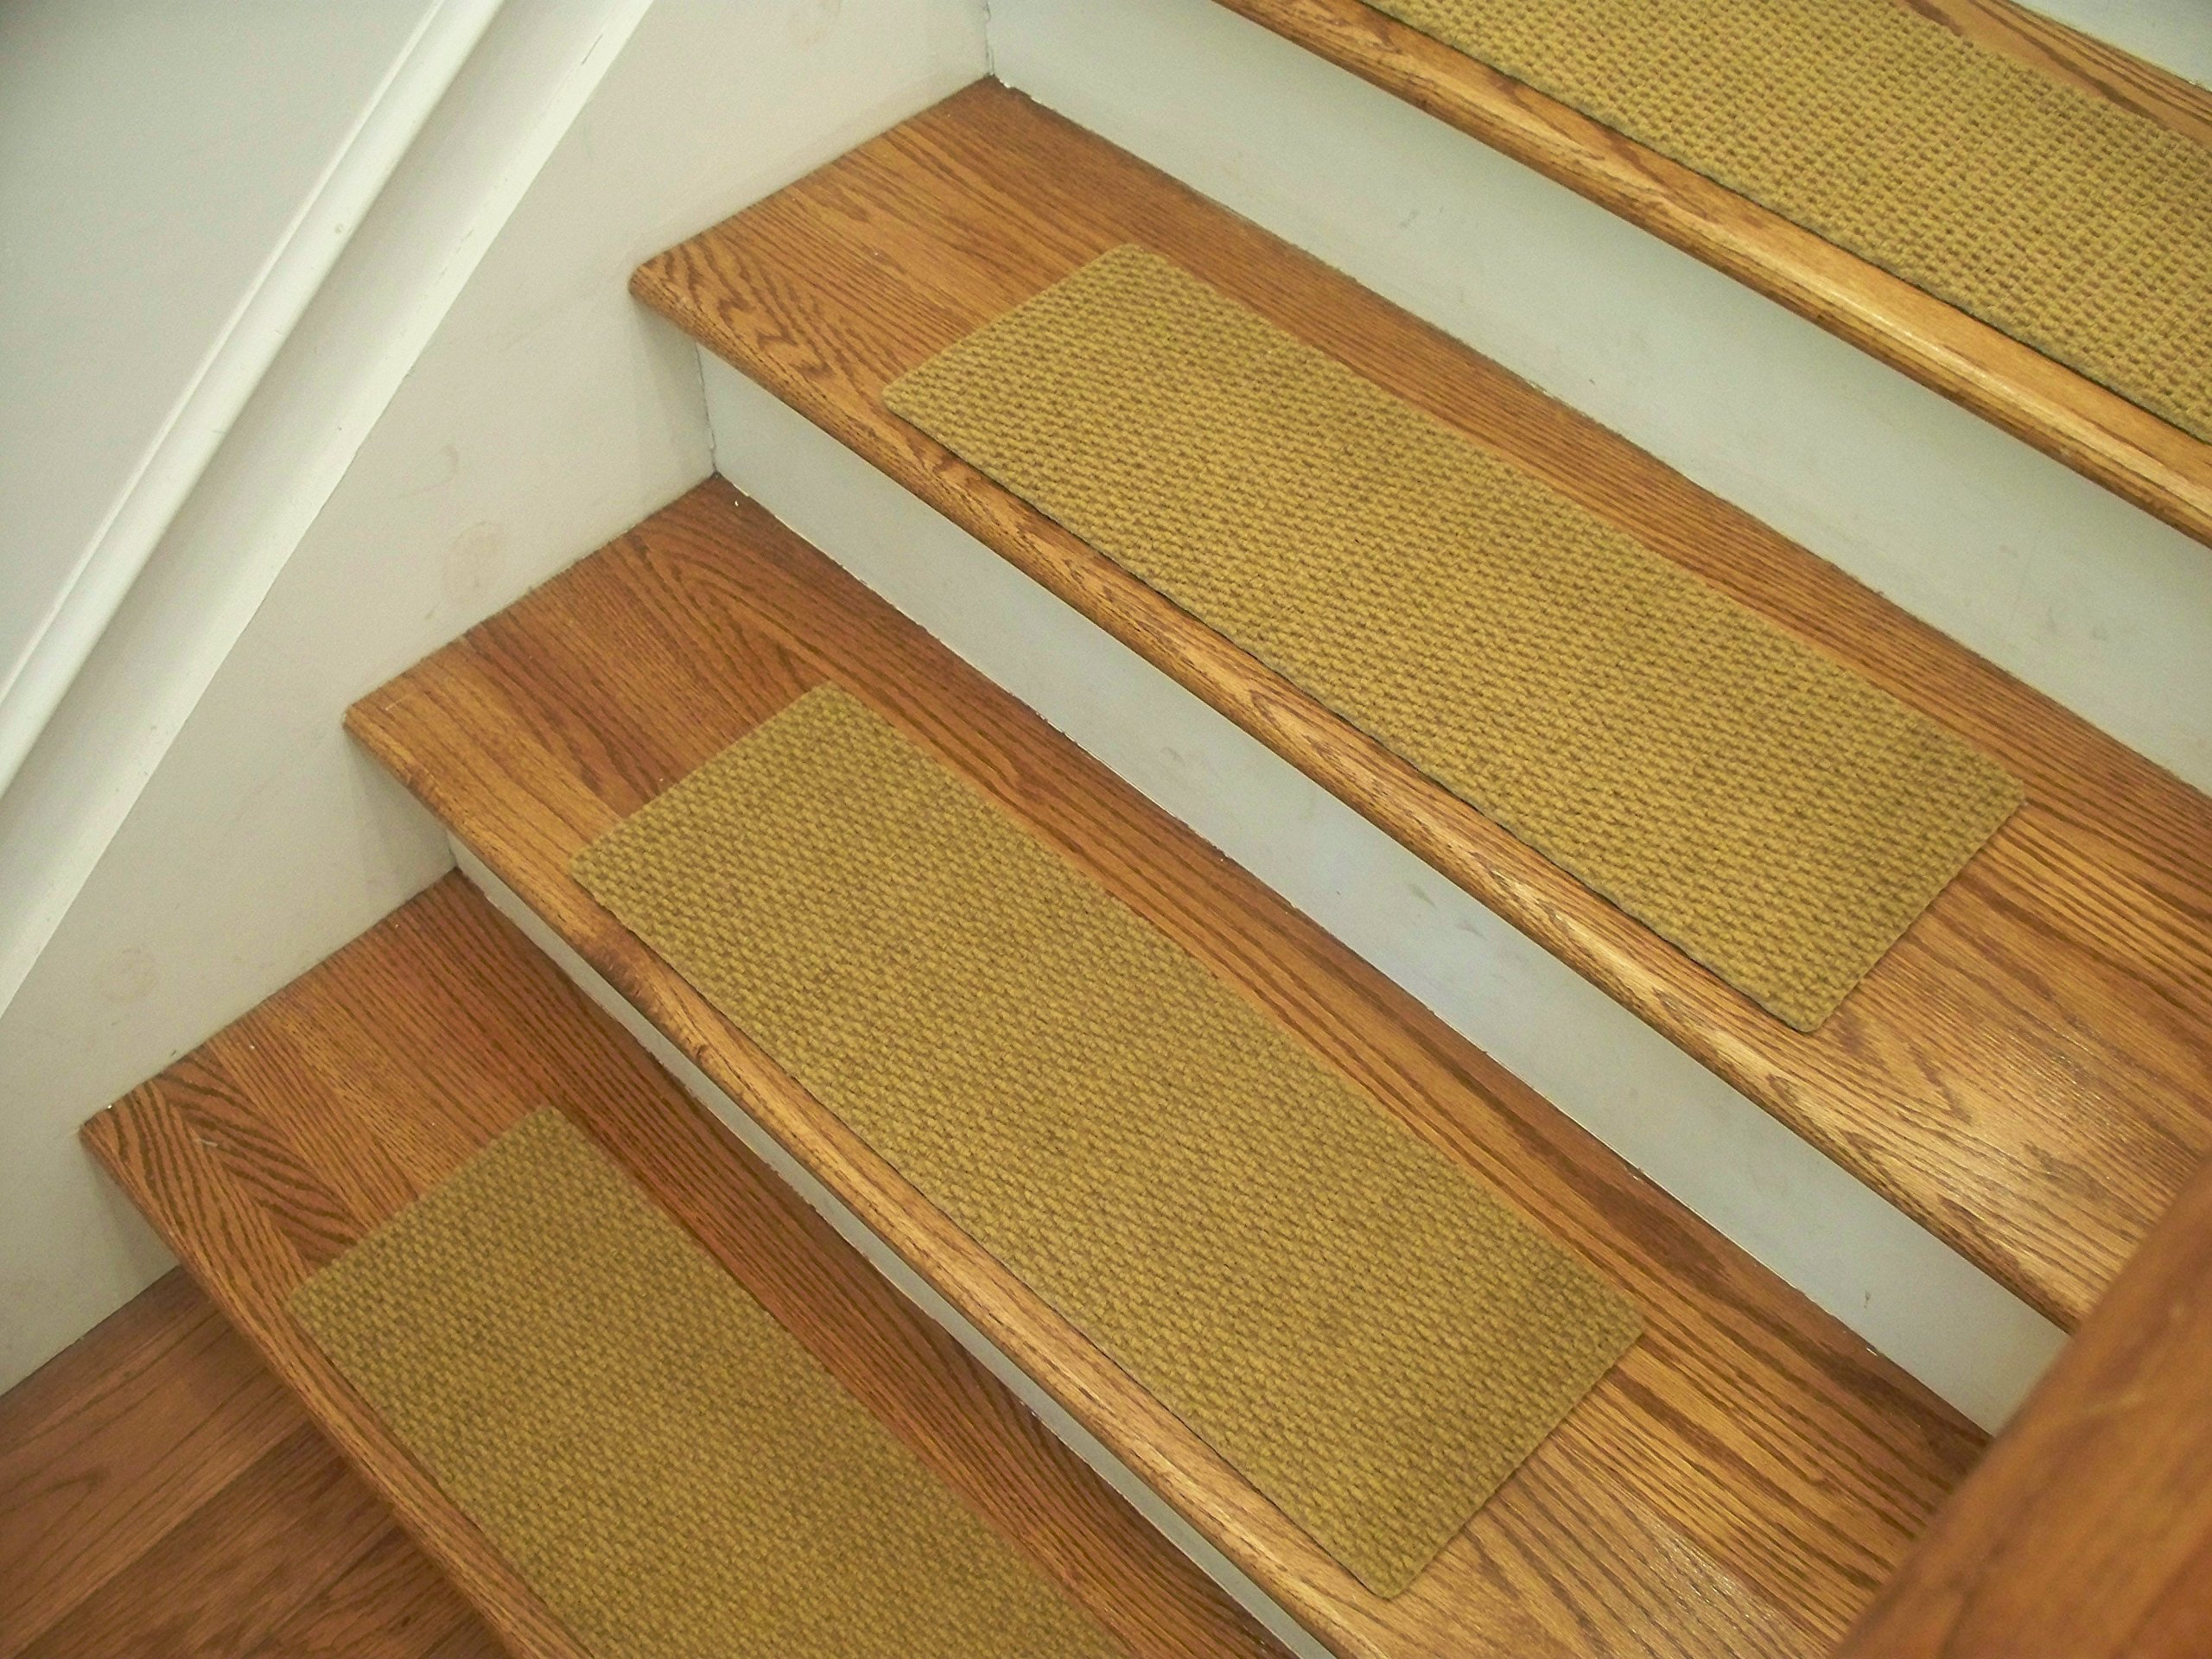 Essential Carpet Stair Treads - Style: Berber - Color: Natural - Size: 24'' x 8'' - Set of 15